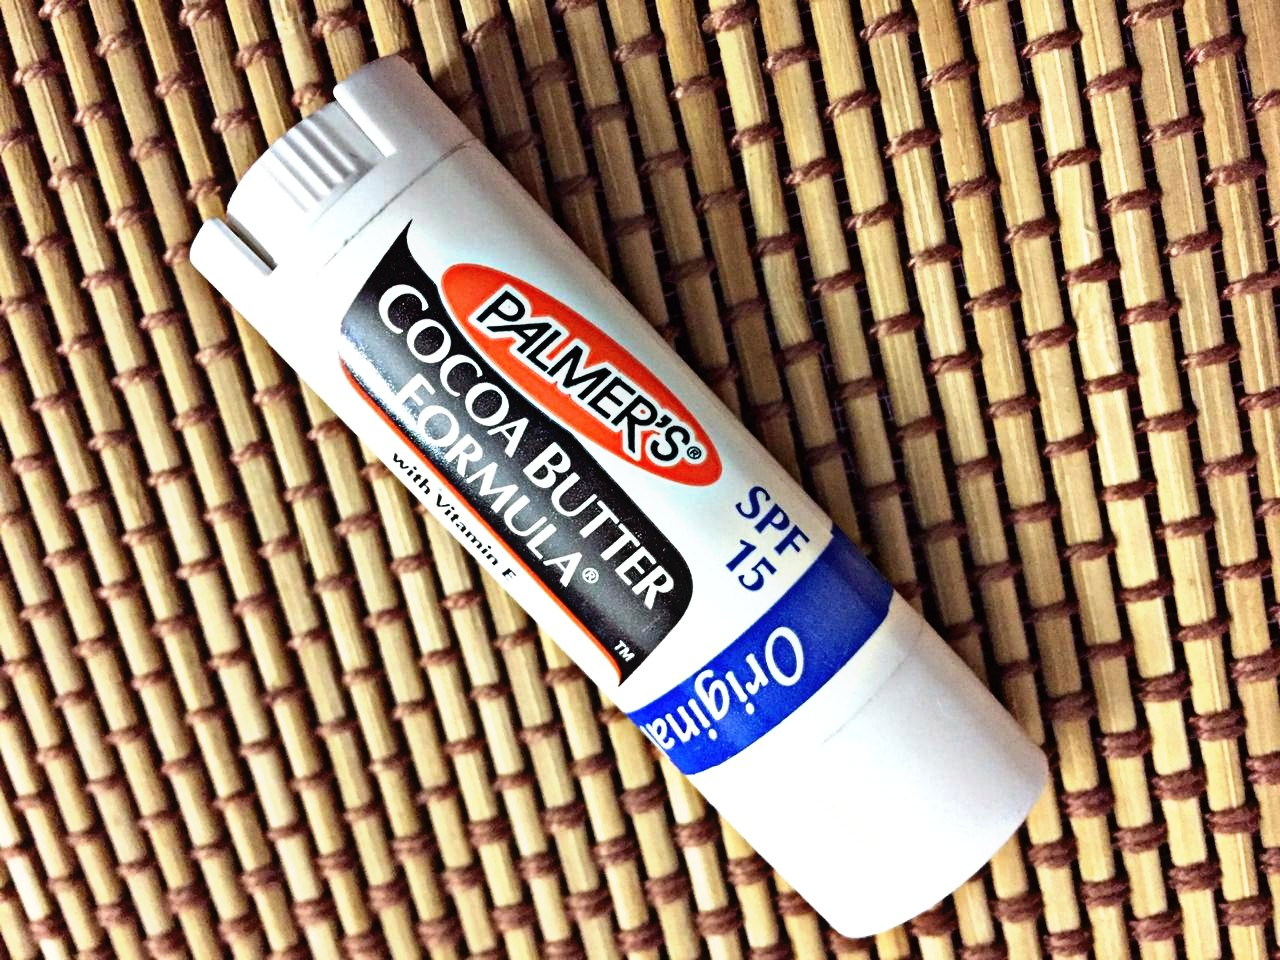 Palmer's Cocoa Butter Lip Balm Review